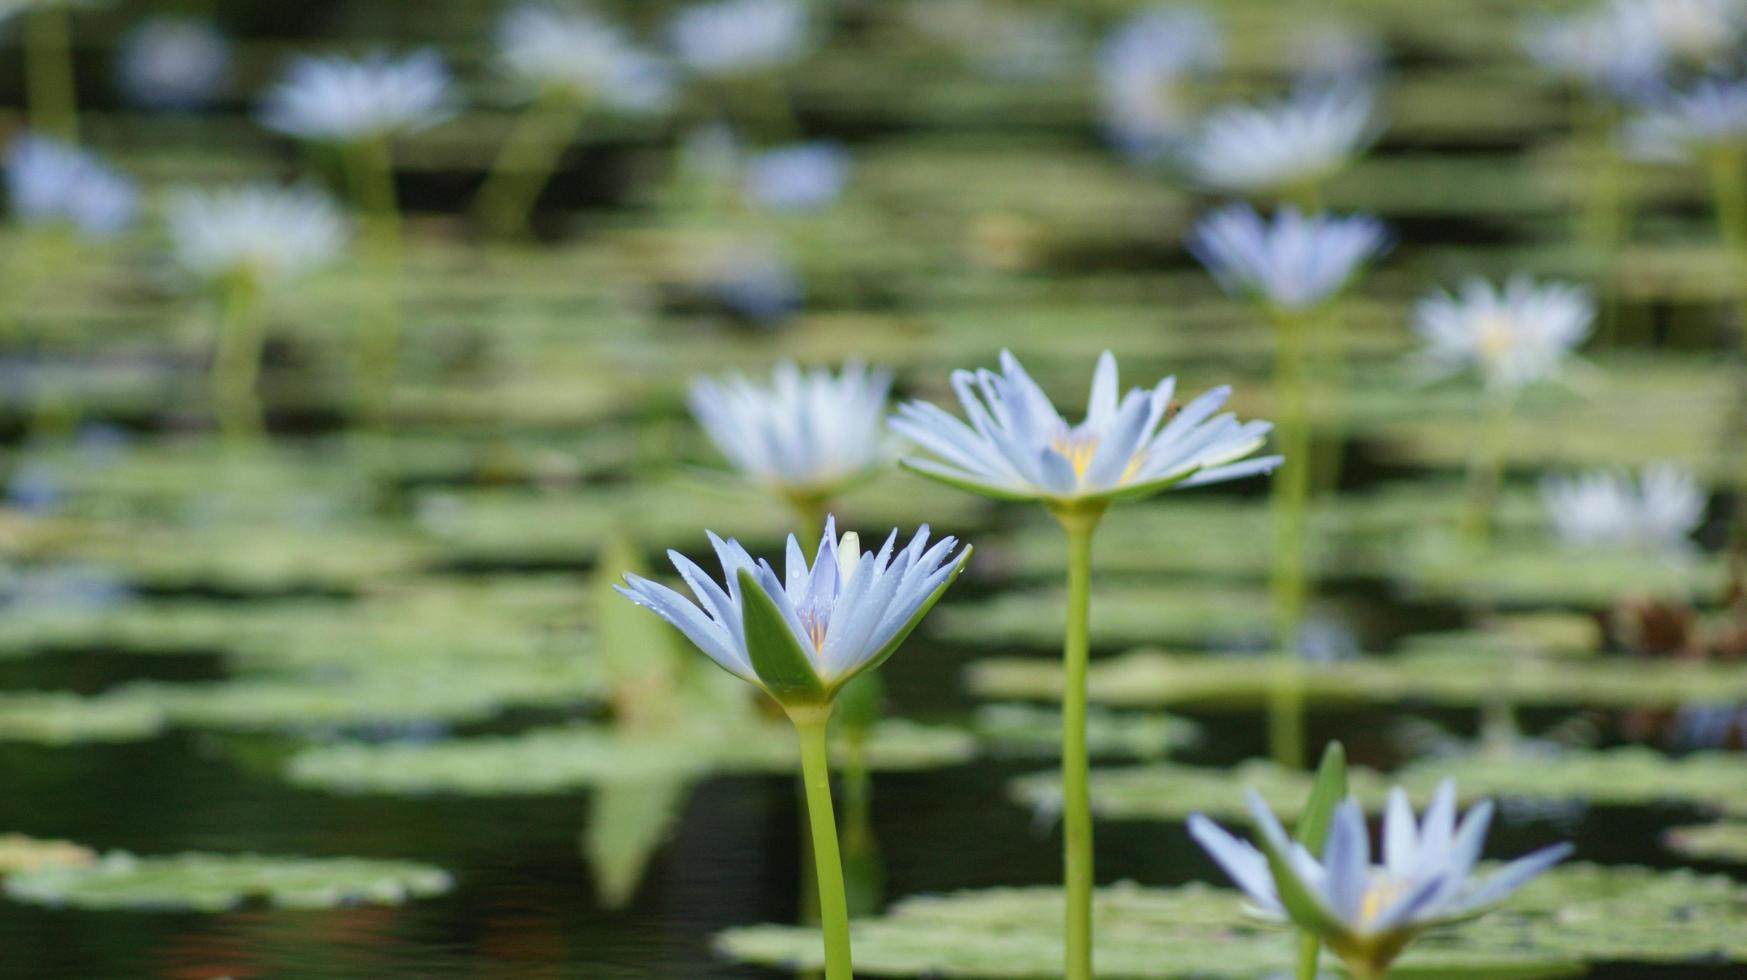 View of a lily pond with blue flowers photo